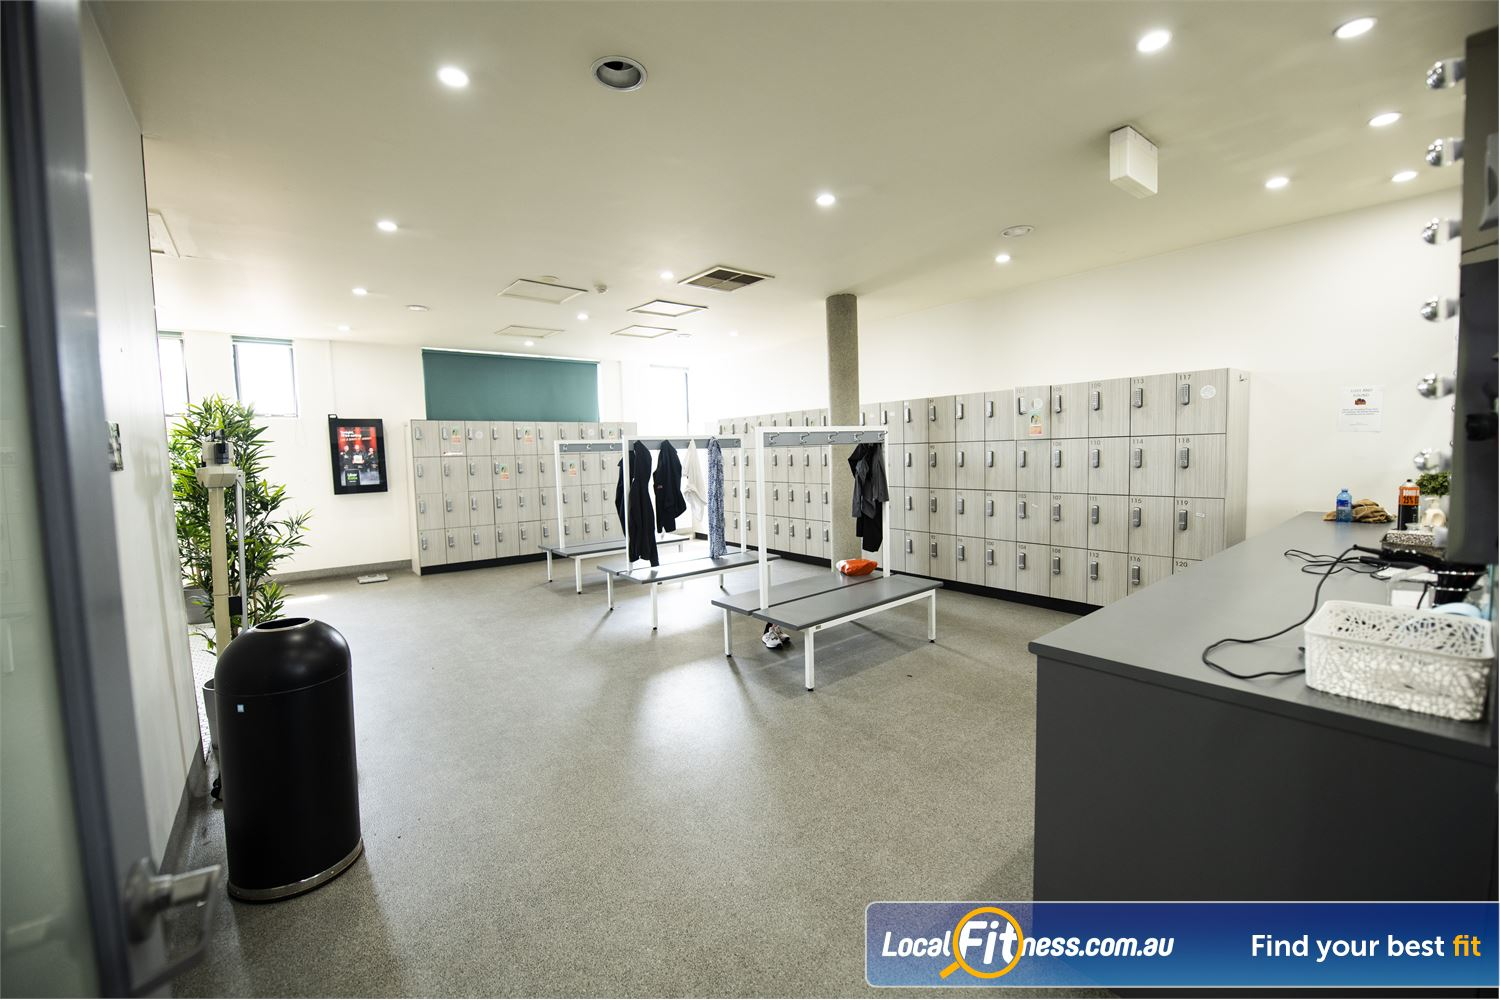 Fernwood Fitness Near Narwee Our exclusive change rooms provide a Relaxing women's sanctuary.